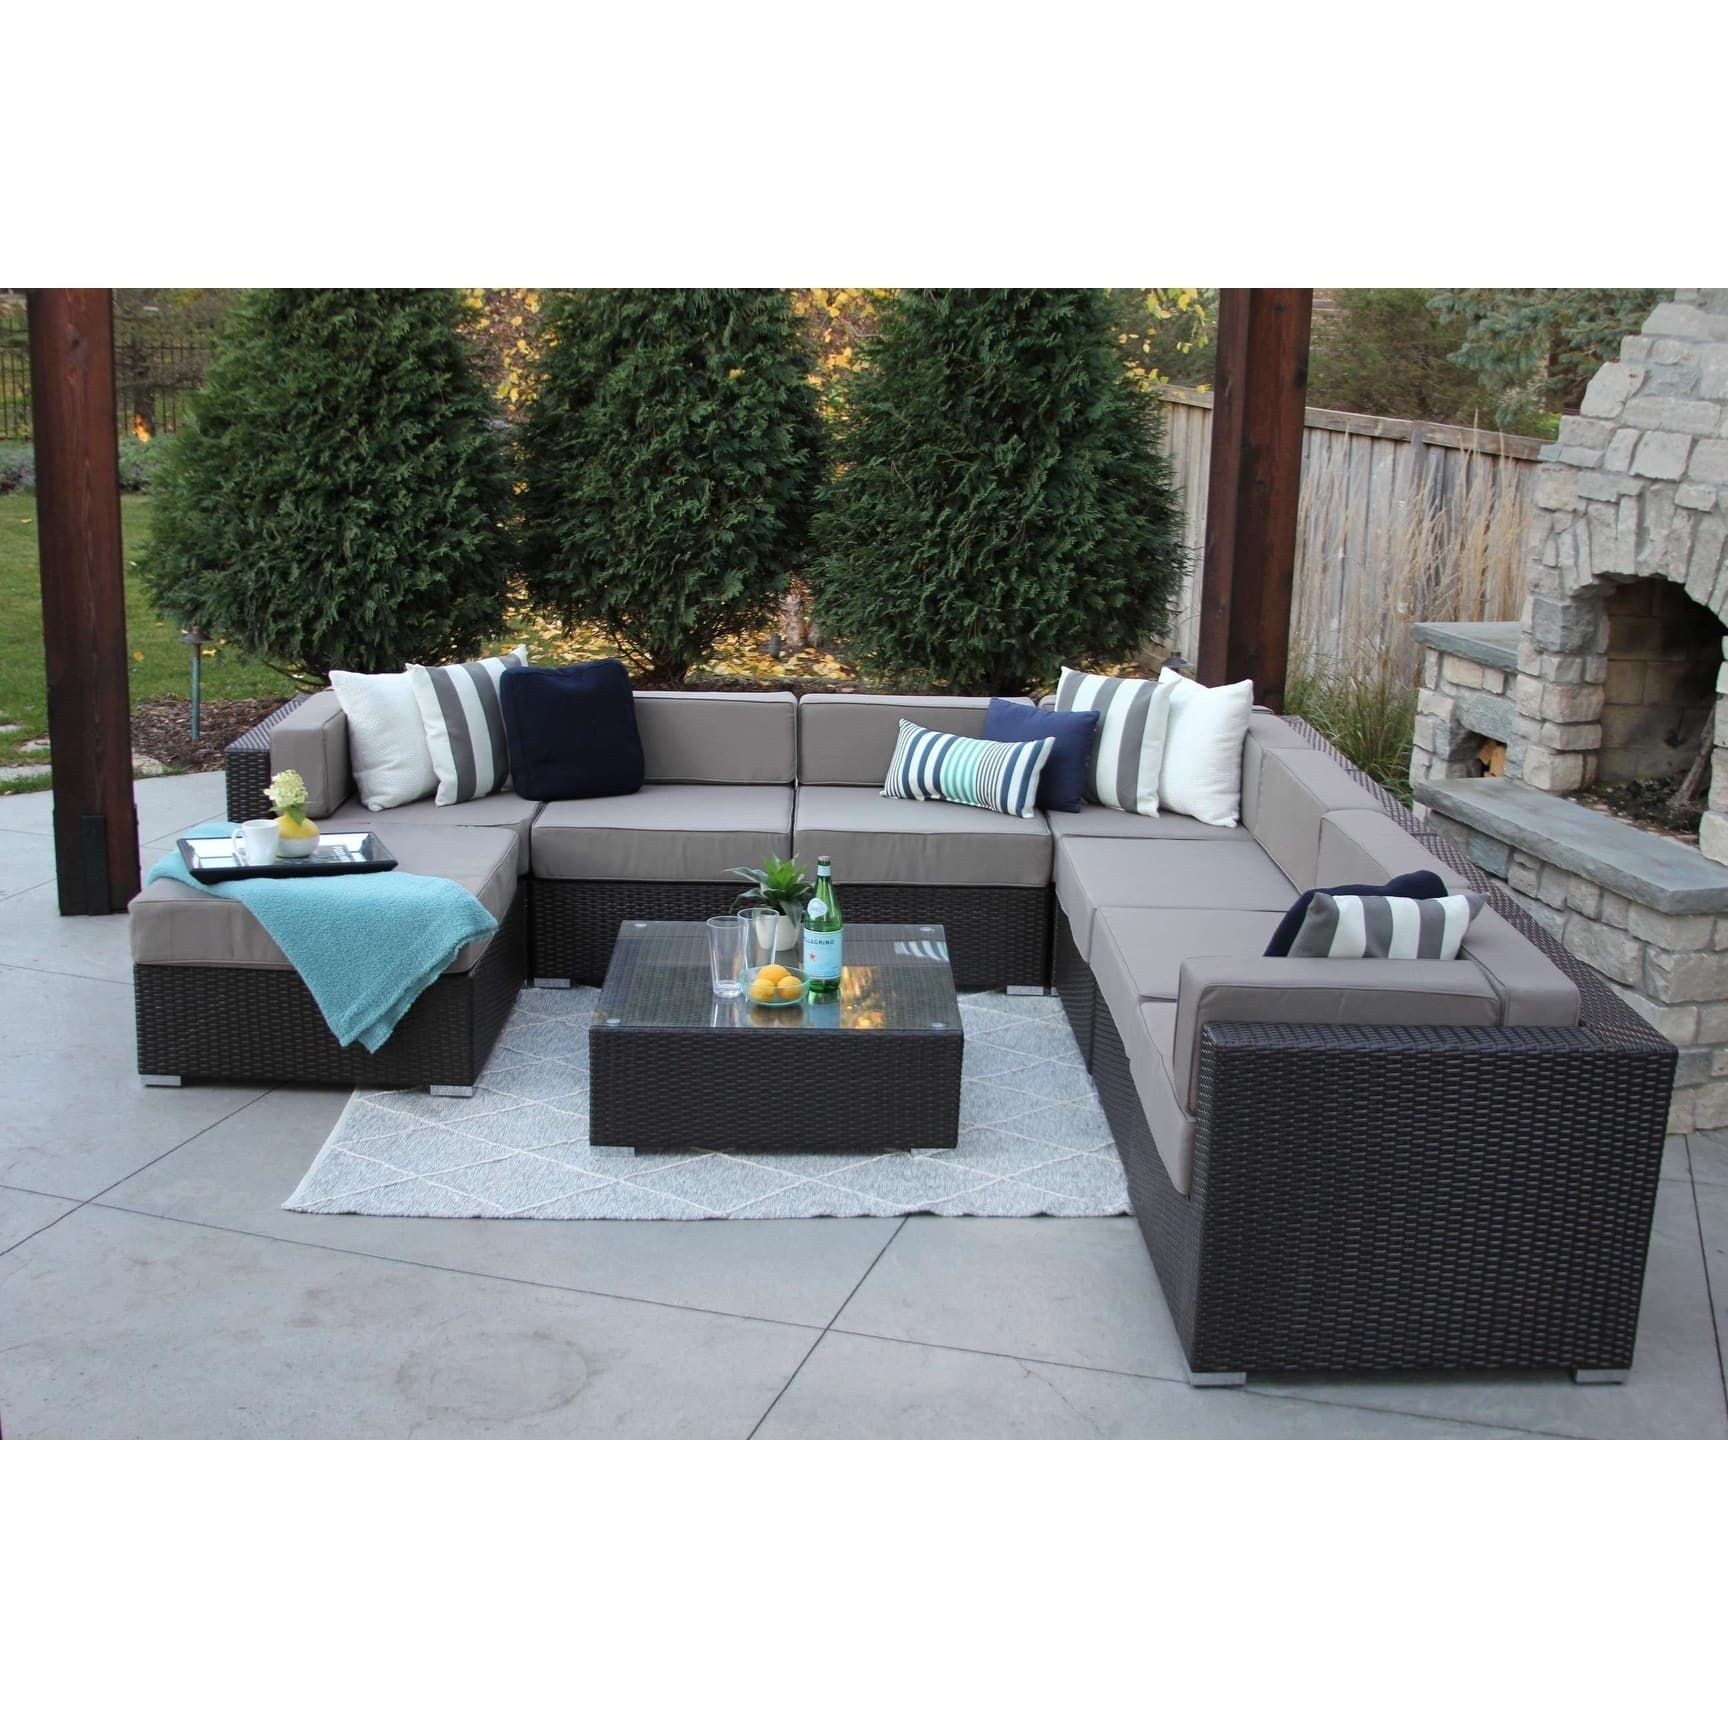 Recamiere Rattan Glass Table Rattan Chair Combination Set Creative Leisure Outdoor